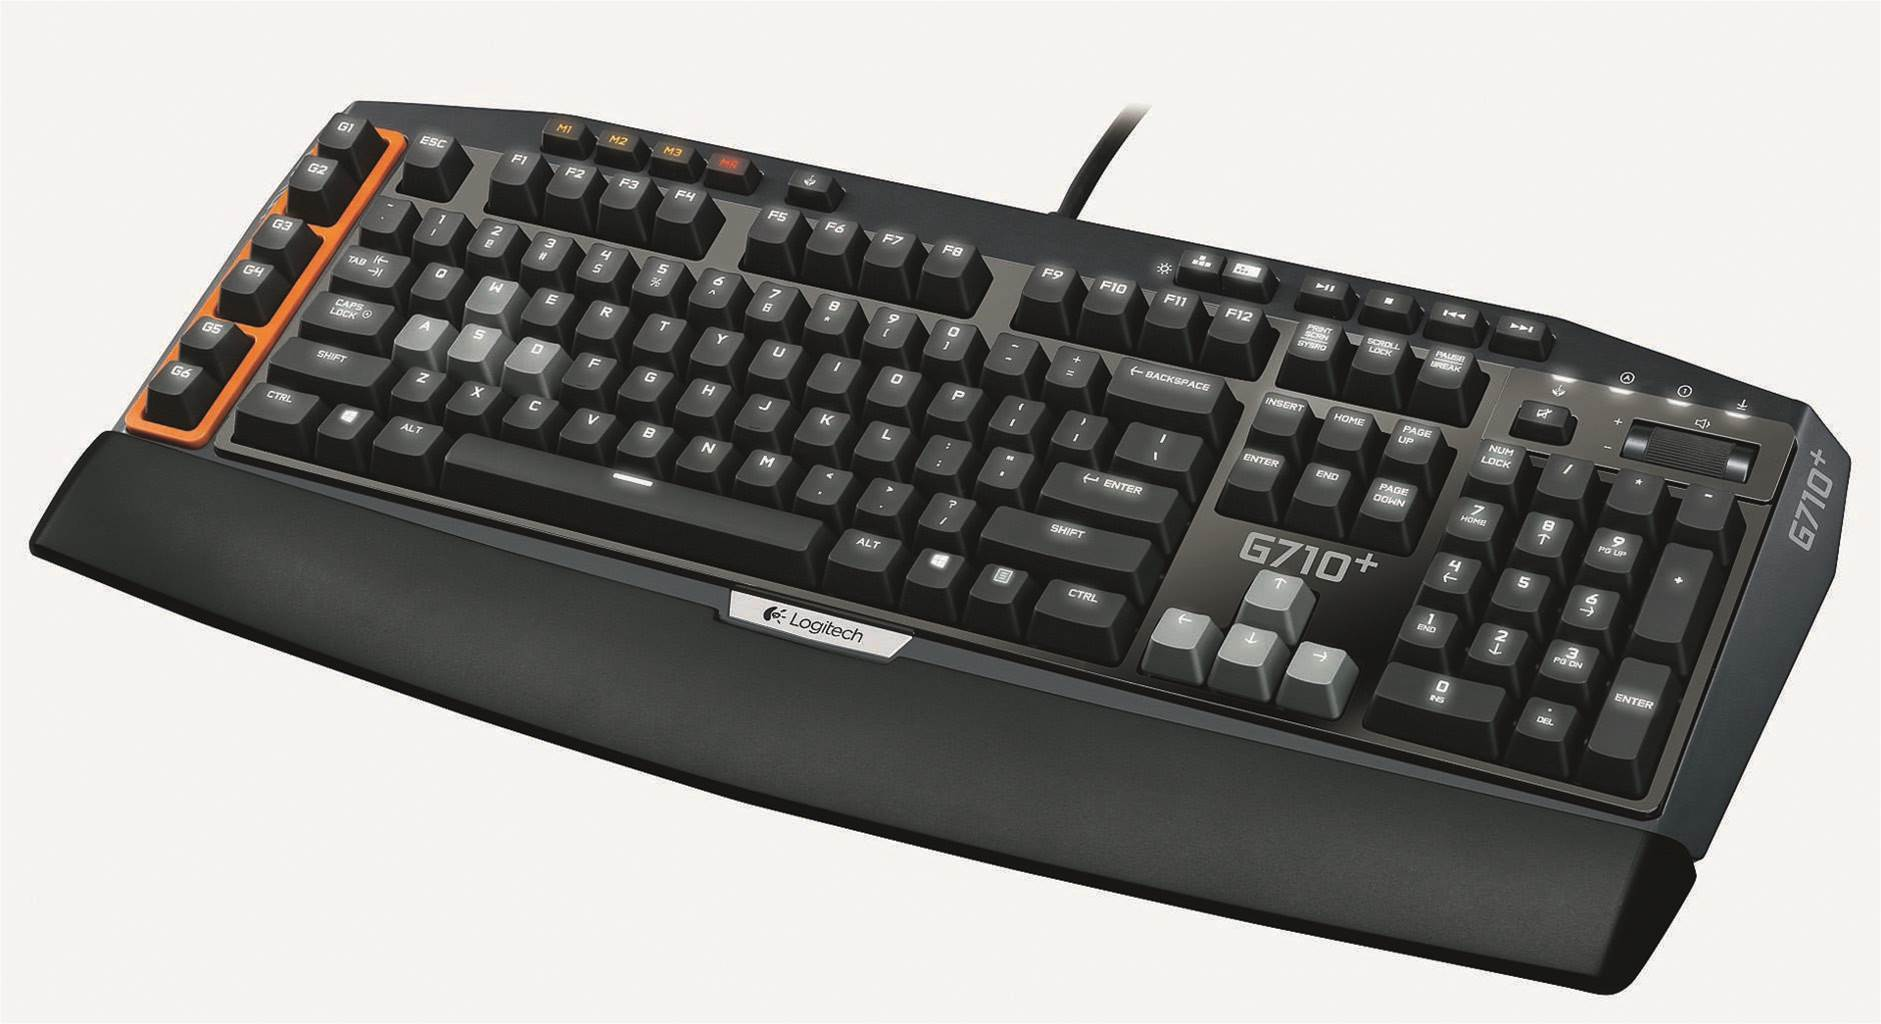 Review: Logitech G710+ Mechanical keyboard